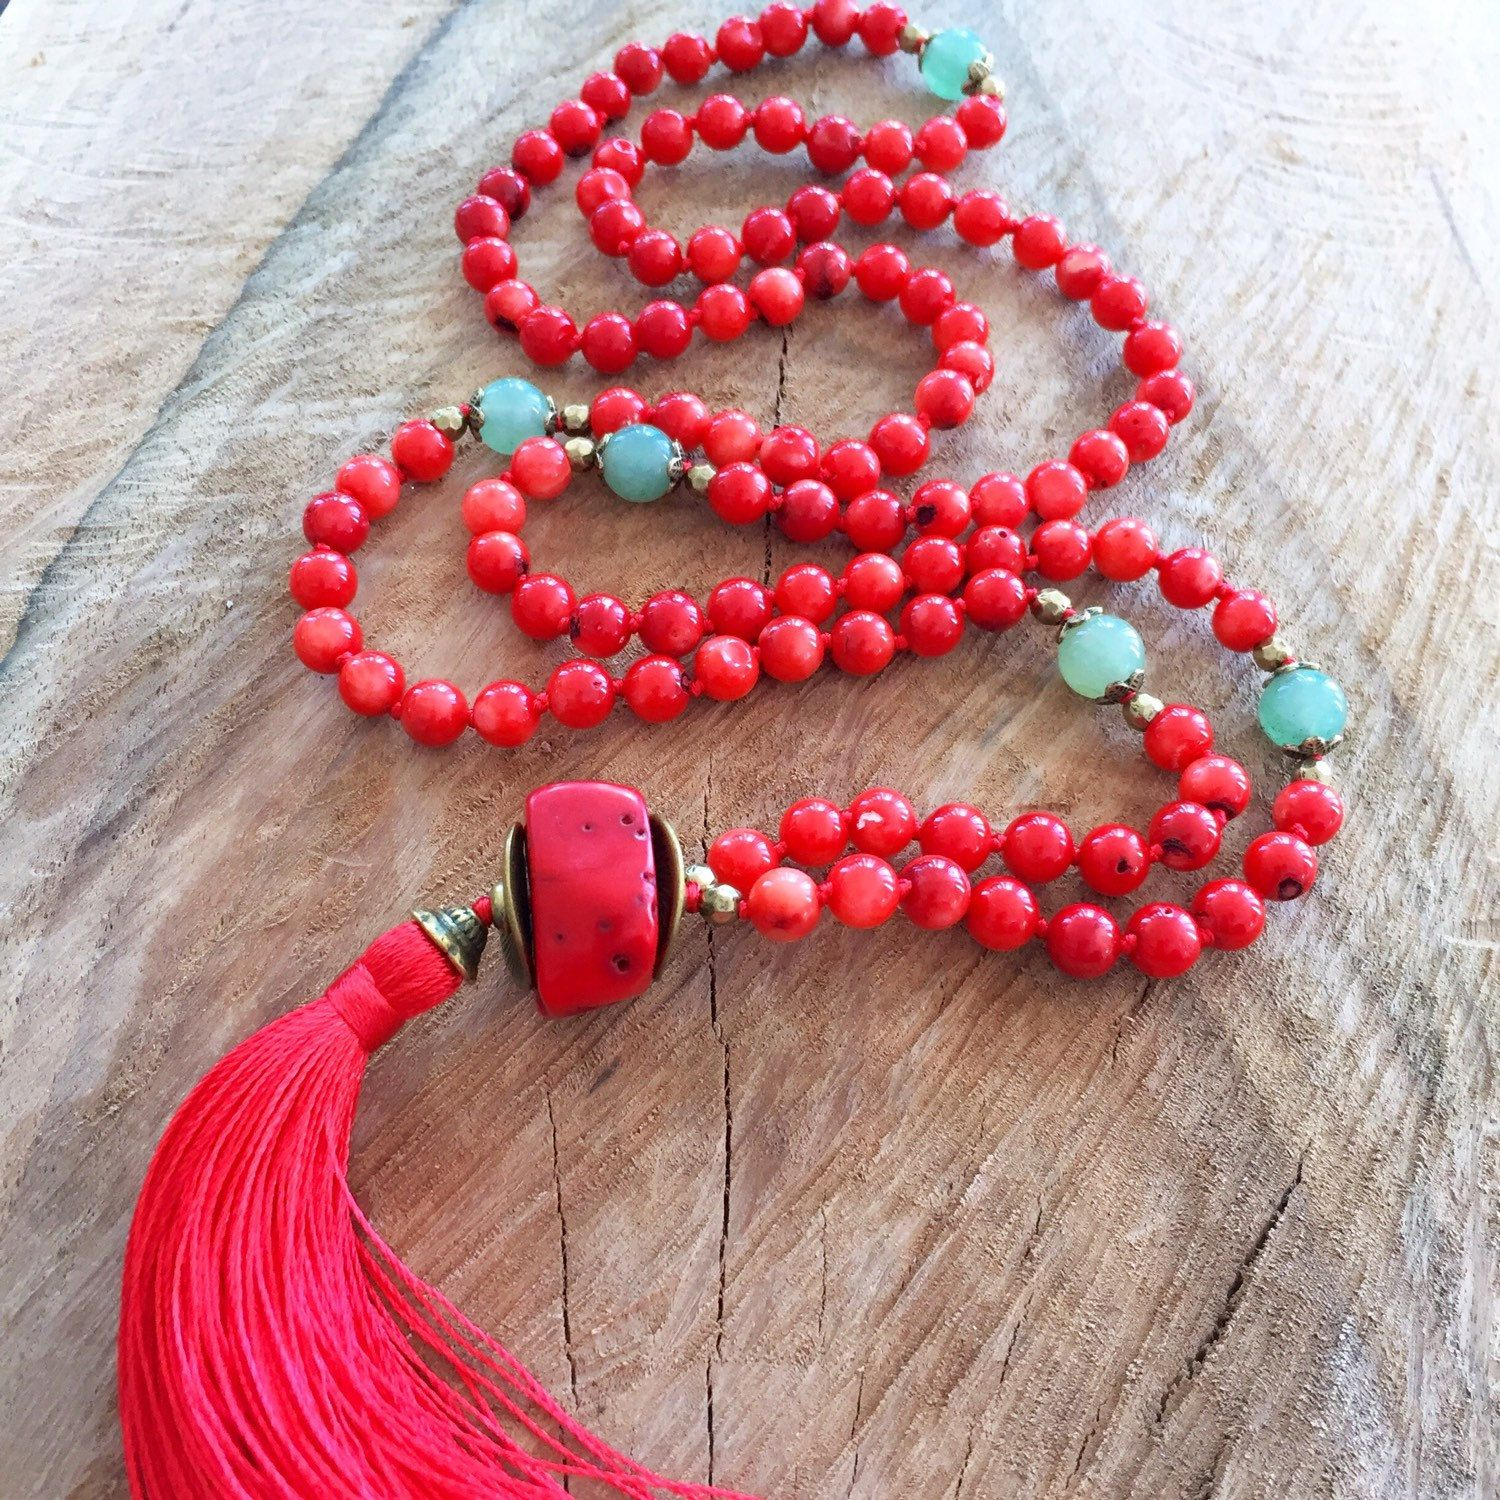 Red coral necklace red coral pendant necklace tassel mala necklace red coral necklace red coral pendant necklace tassel mala necklace knotted coral necklace 108 bead mala red jewelry boho chic necklace aloadofball Images